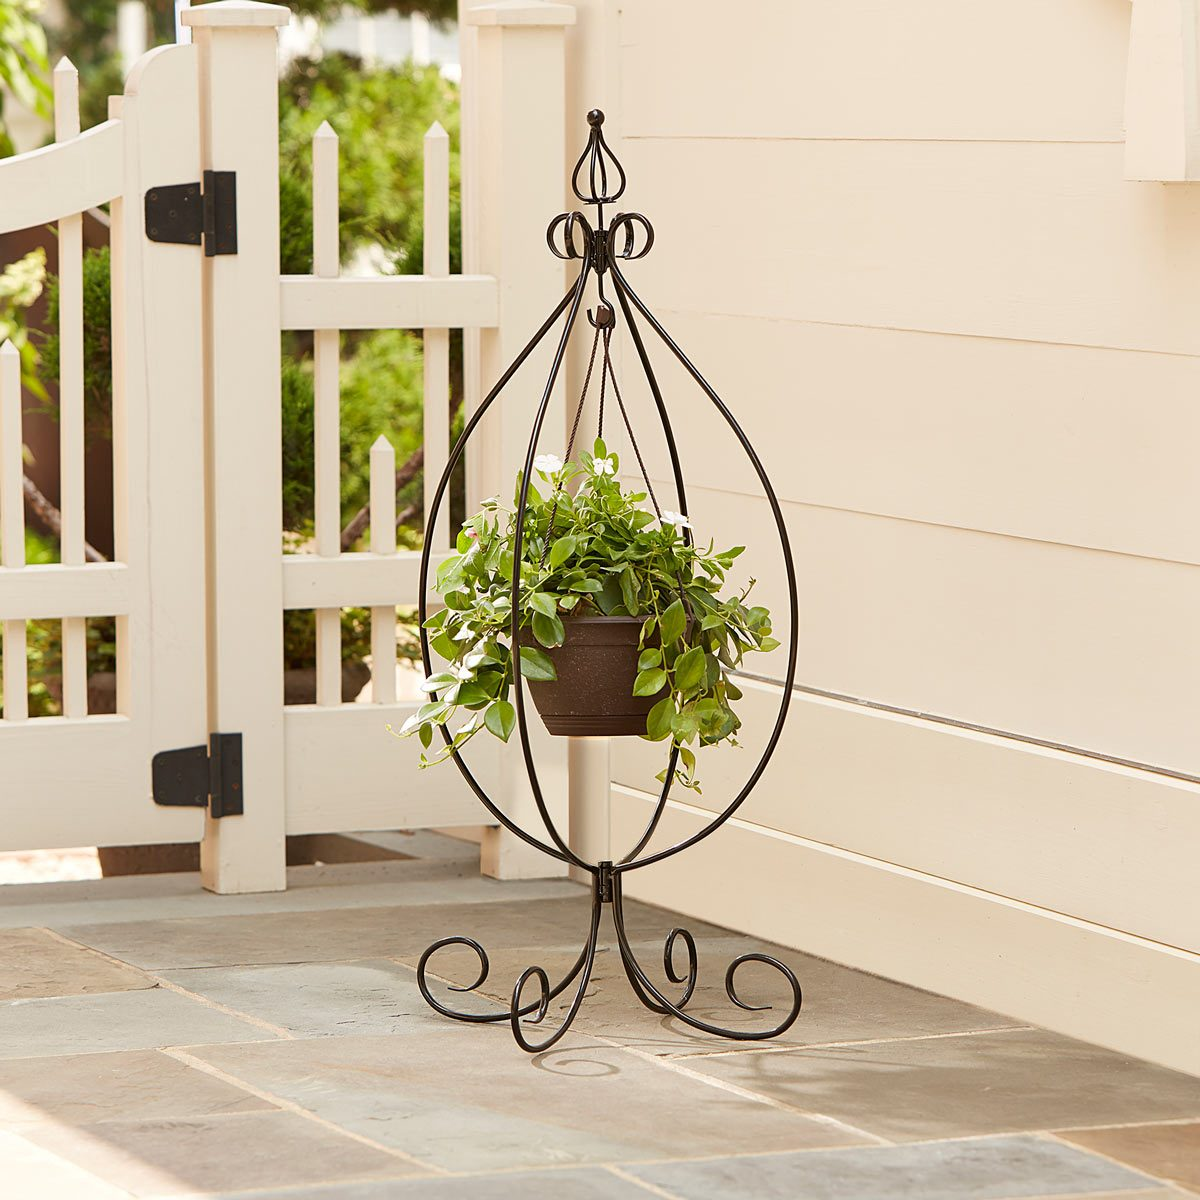 15 Creative Ways to Hang a Plant Outdoors — The Family ... on Stand For Hanging Plants  id=89605